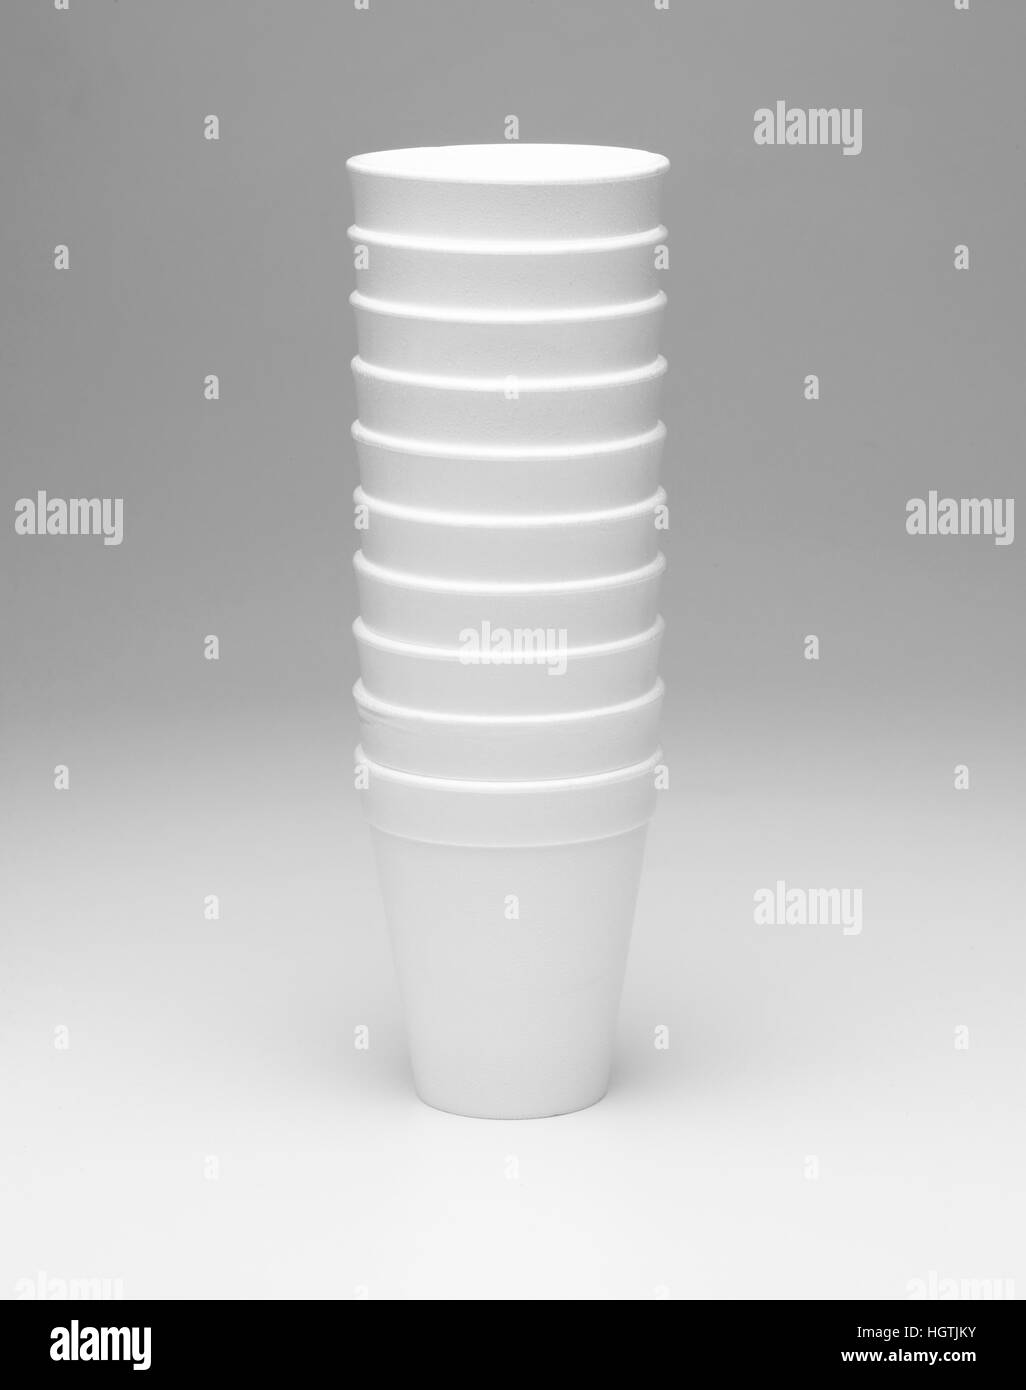 Styrofoam cup on a graduating neutral background Stock Photo